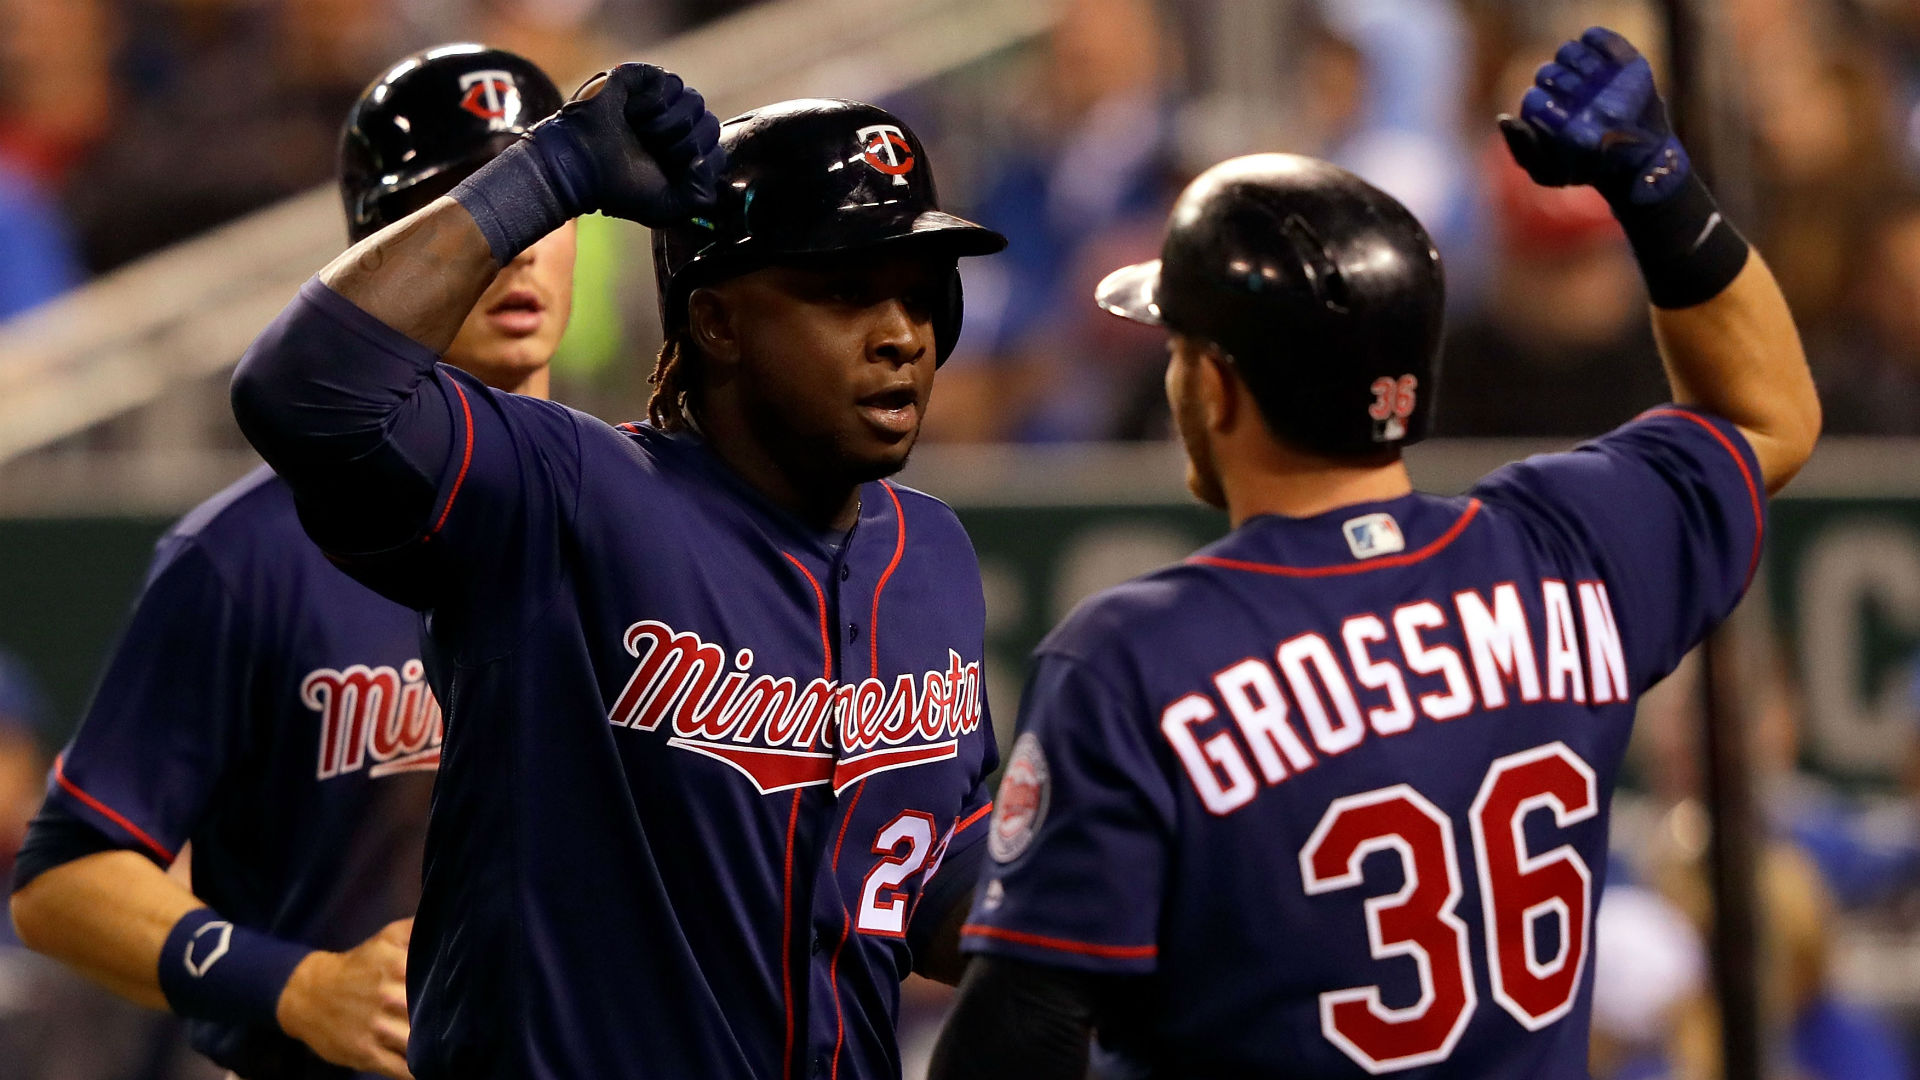 Kepler leads Twins' offensive surge in 14-7 win over Orioles